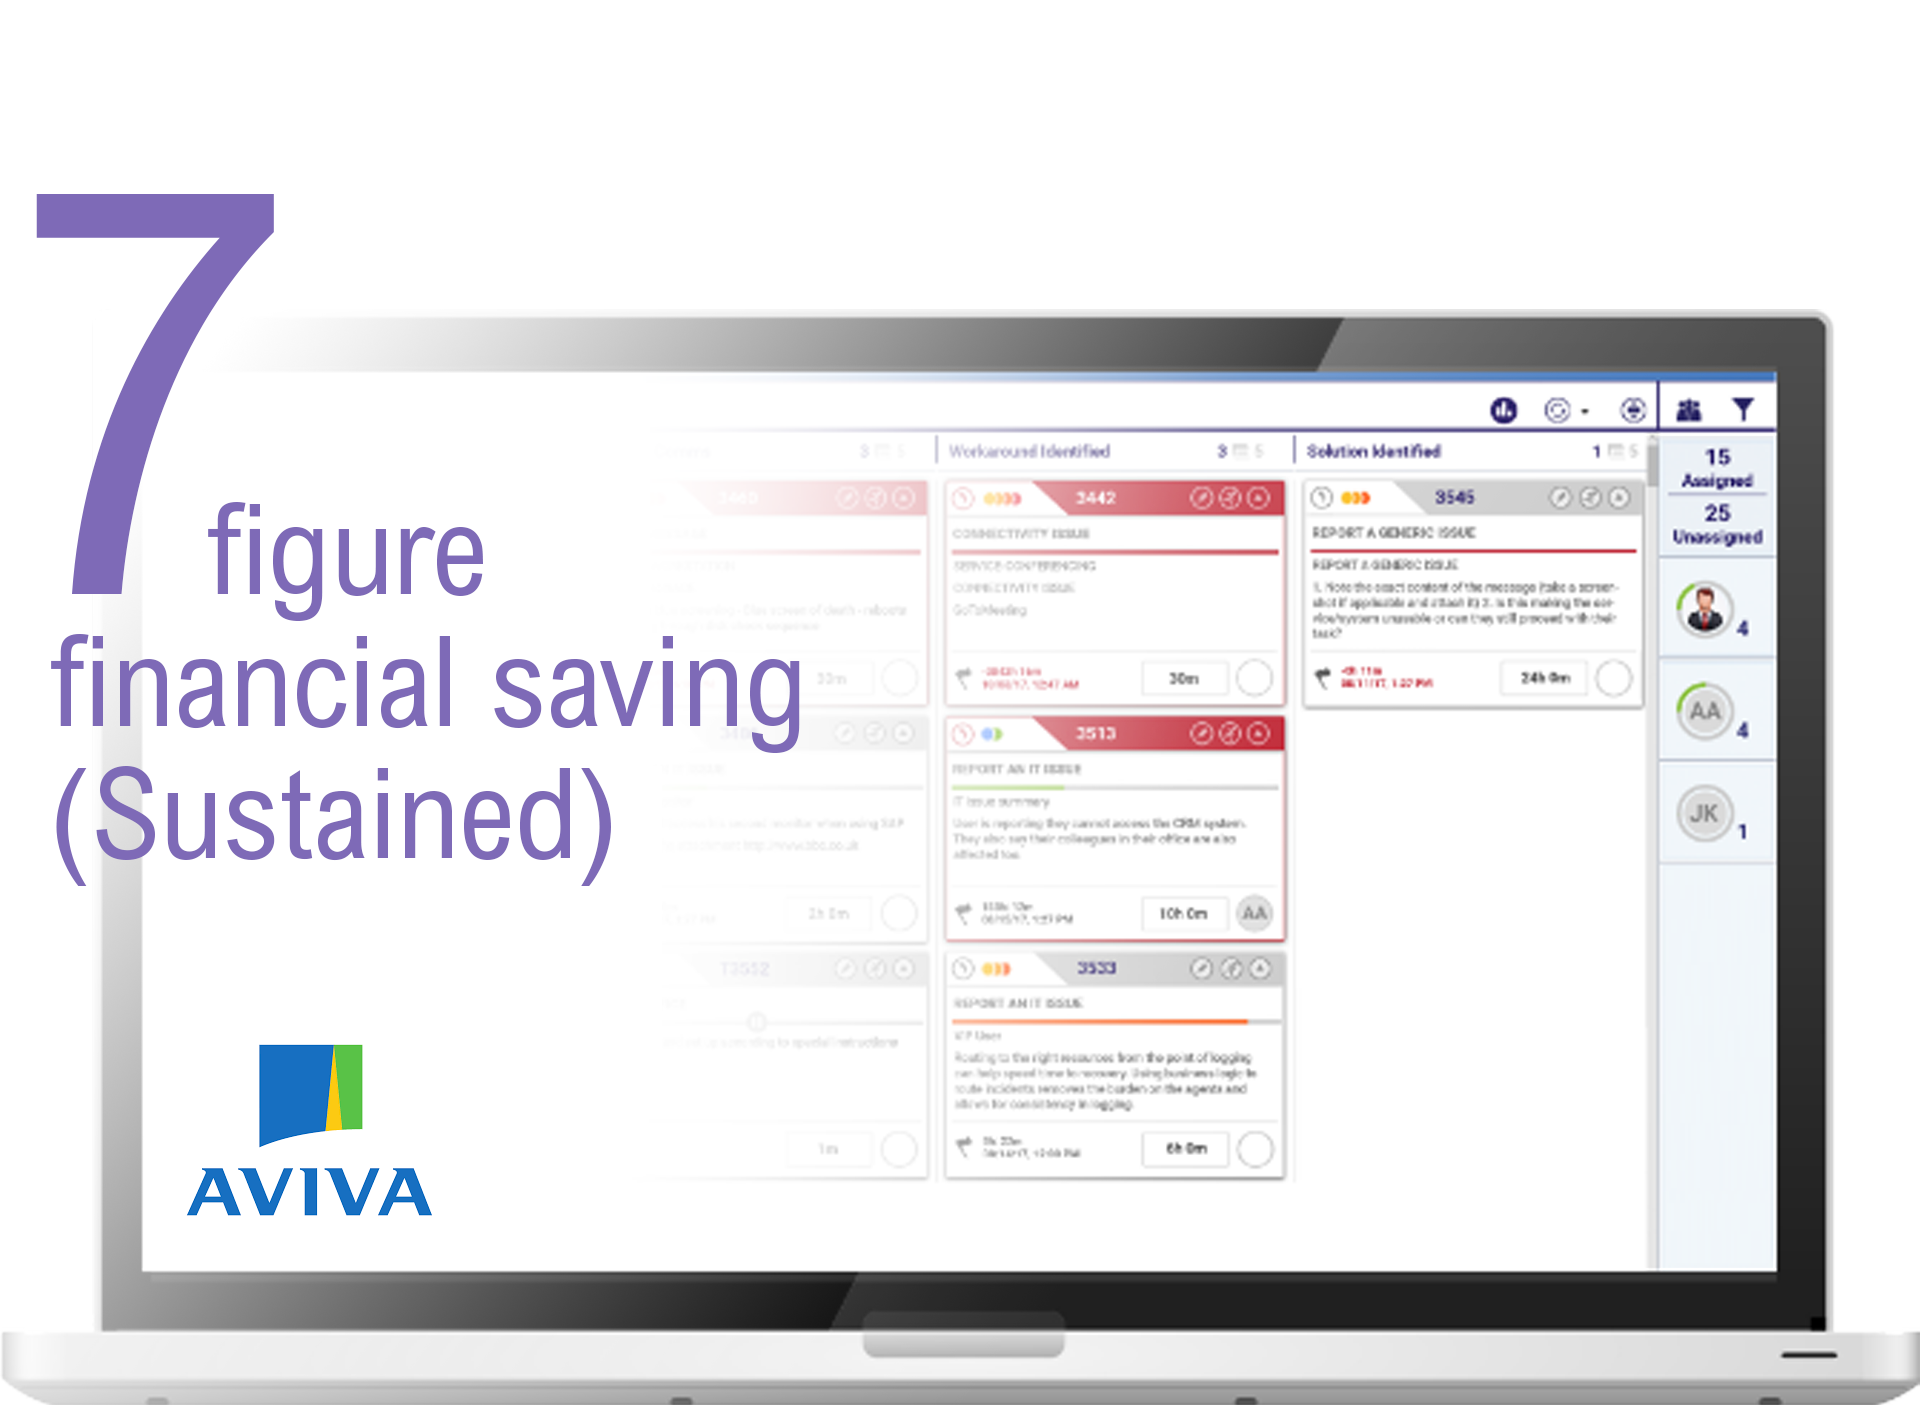 7 figure financial saving (sustained)